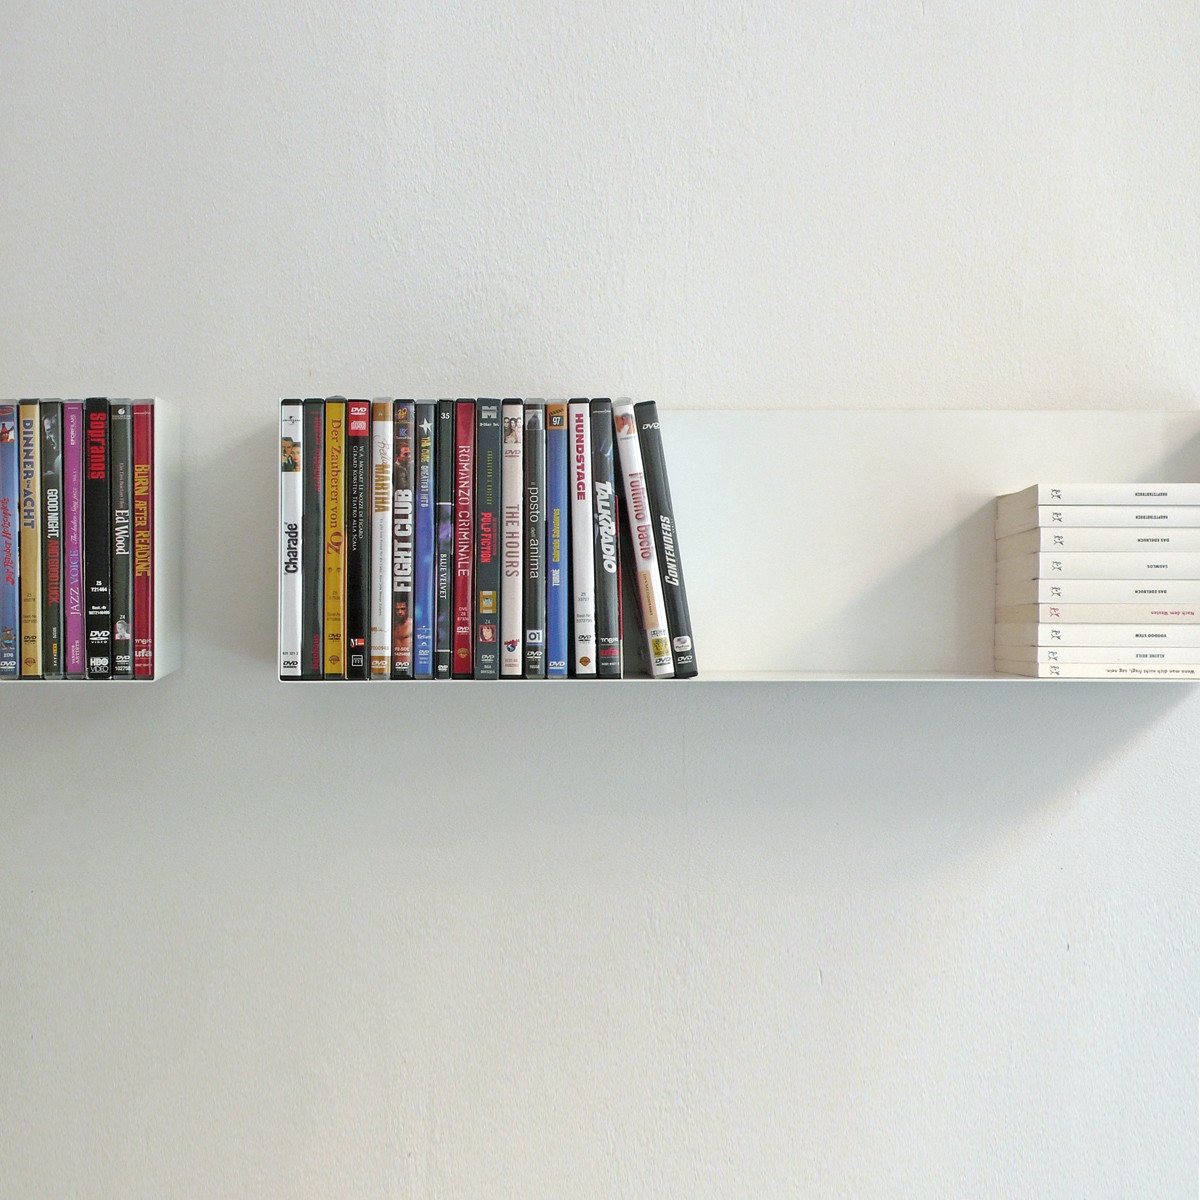 Linea1 A Paperback And Dvd Shelf In The Shop Pertaining To Invisible Dvd Shelf (Image 14 of 15)